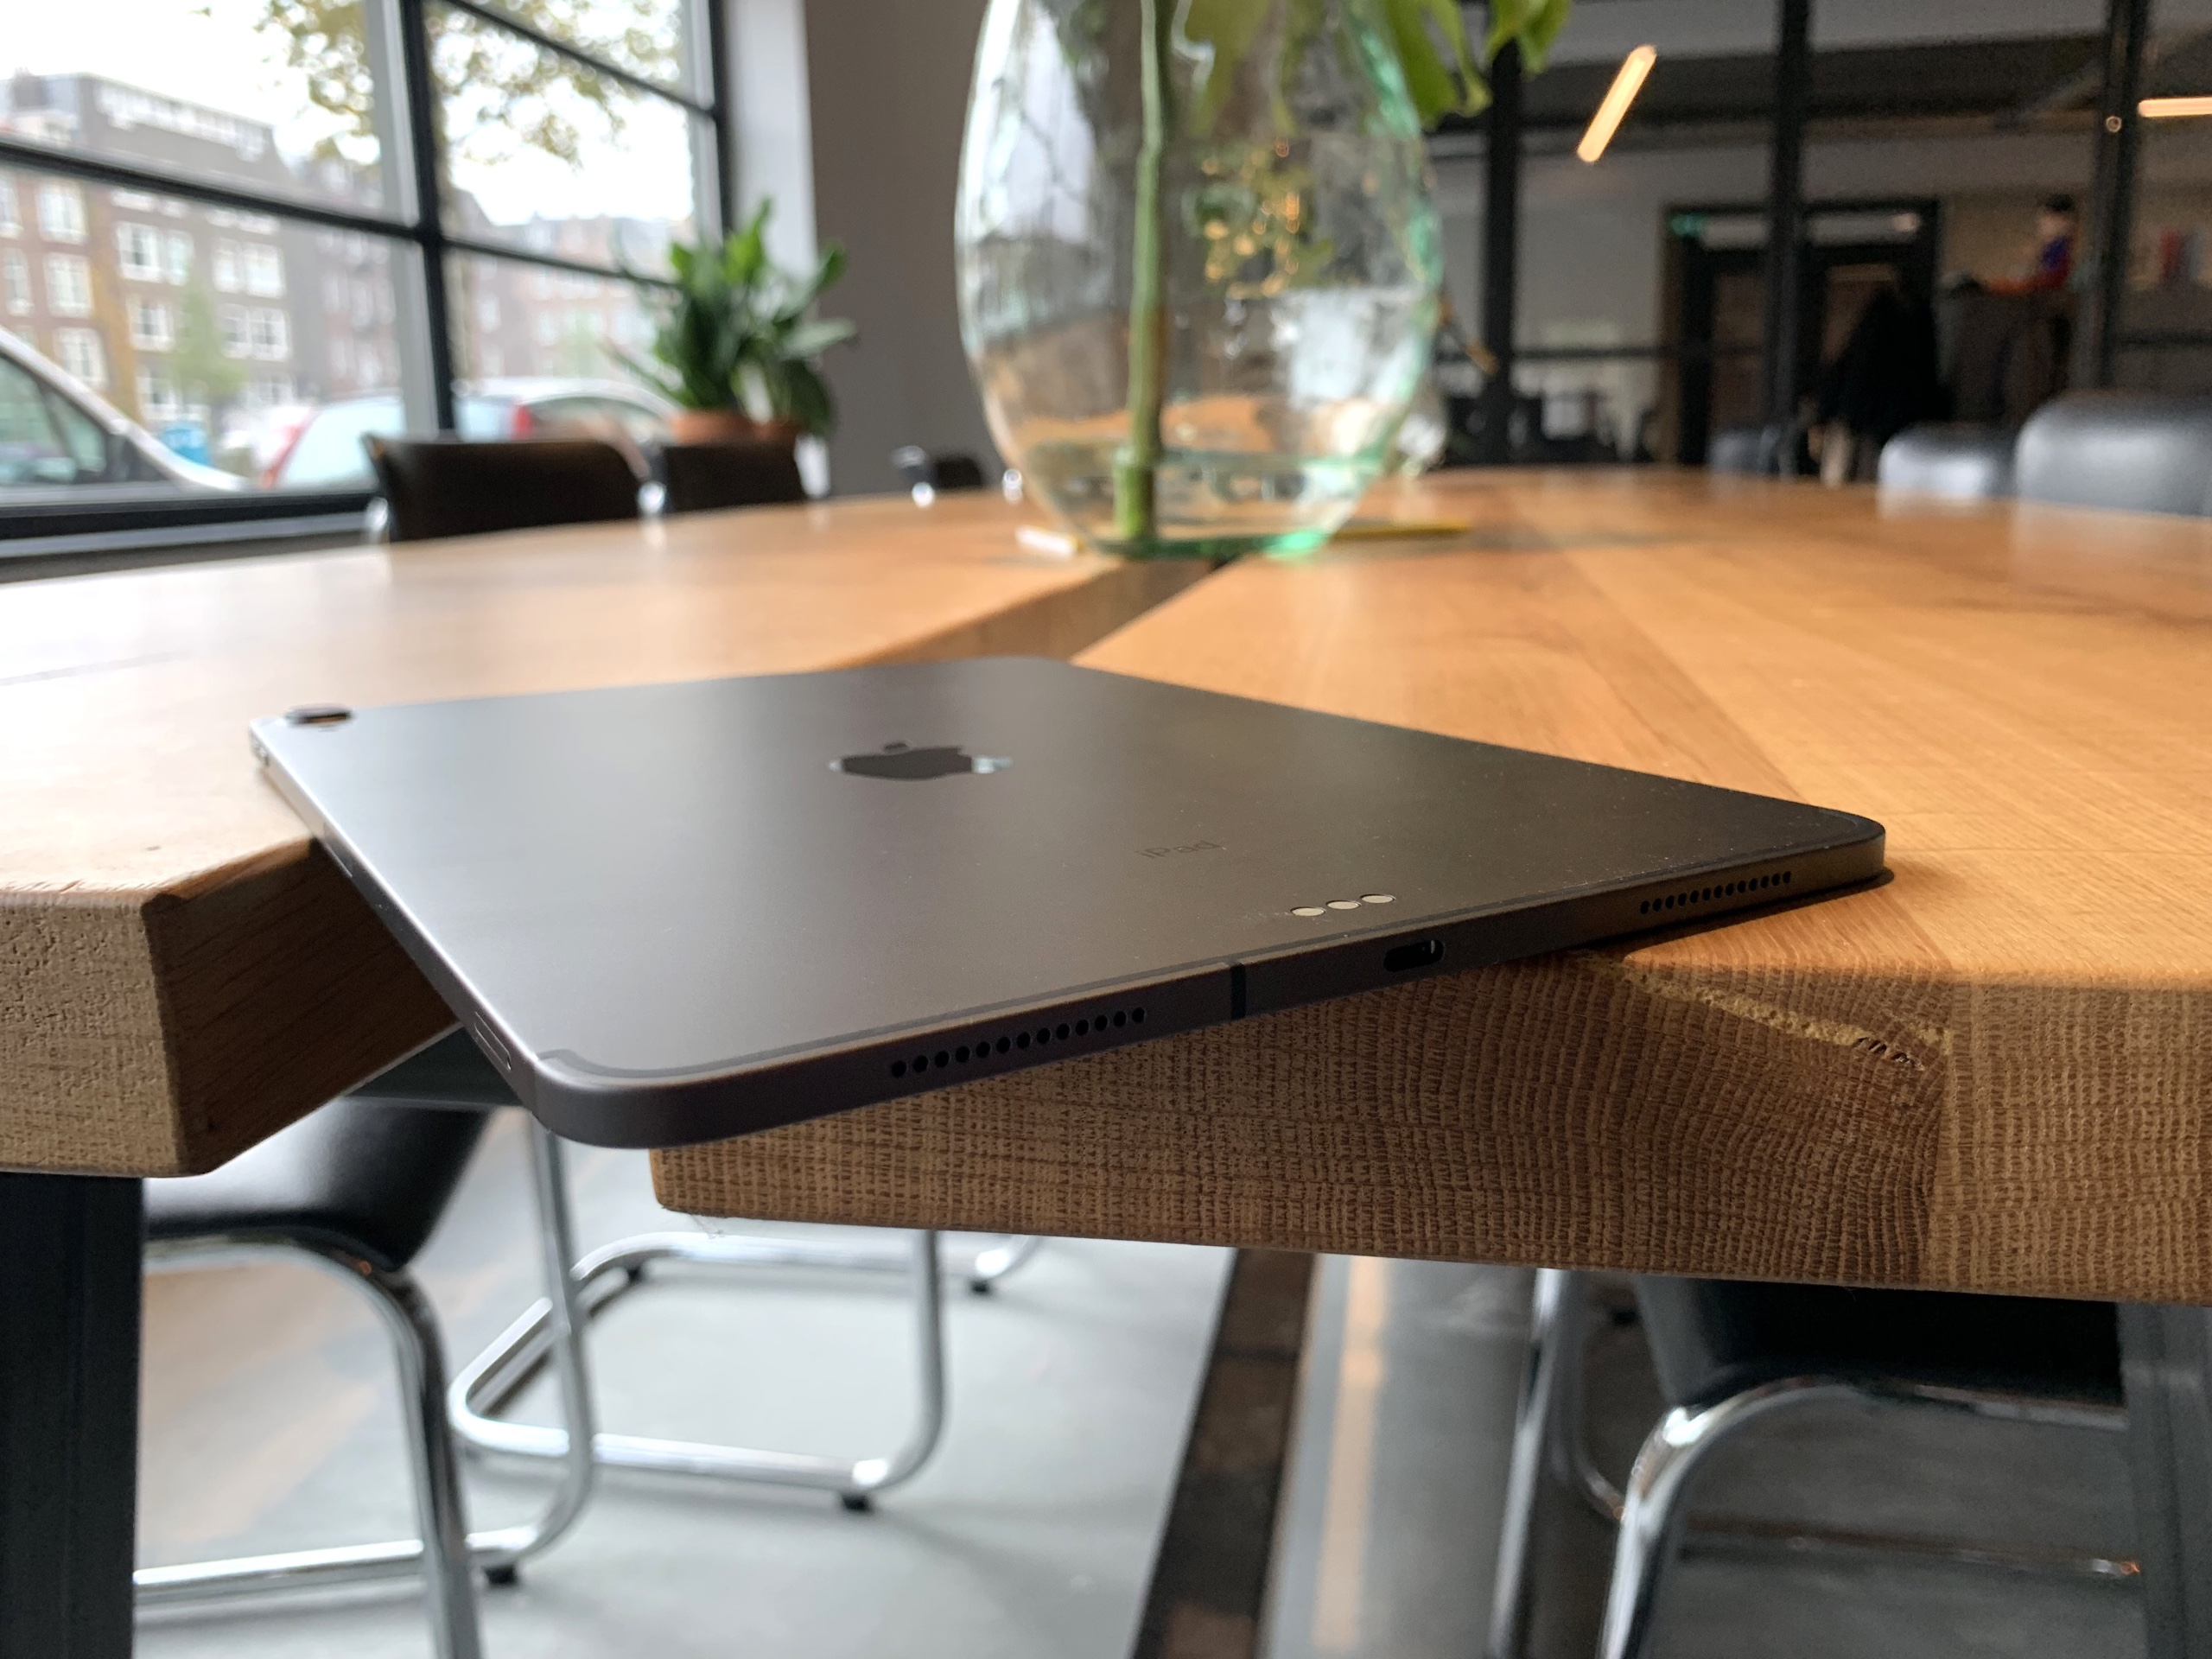 Ipad Pro 2018 review foto 004